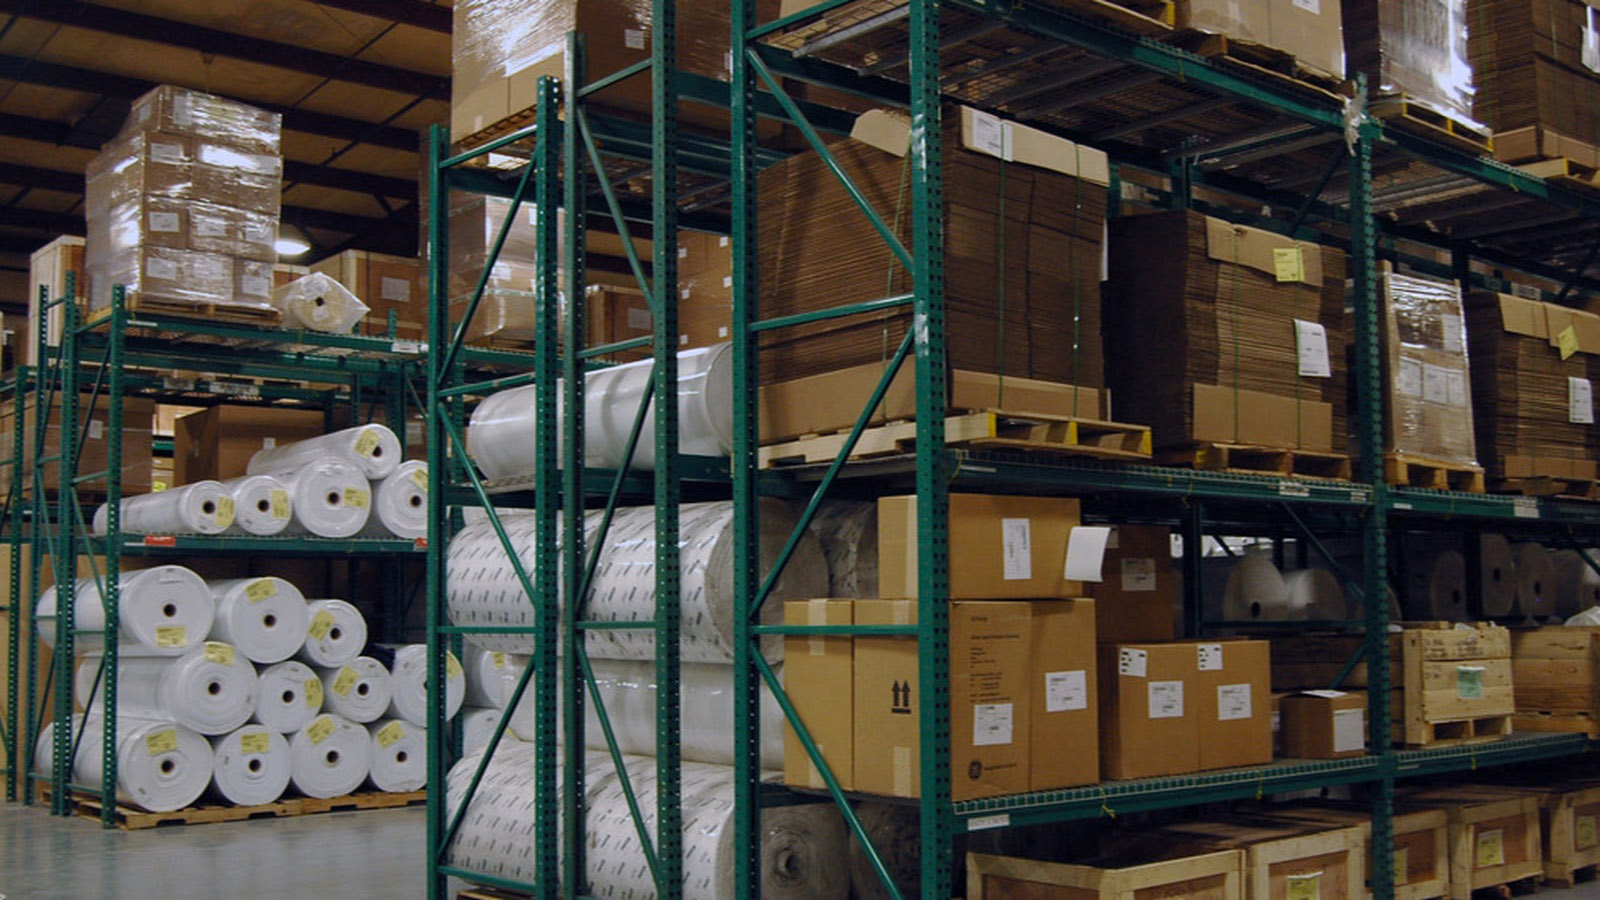 CDS sees rise in demand from global brands as UK warehouse investment doubles